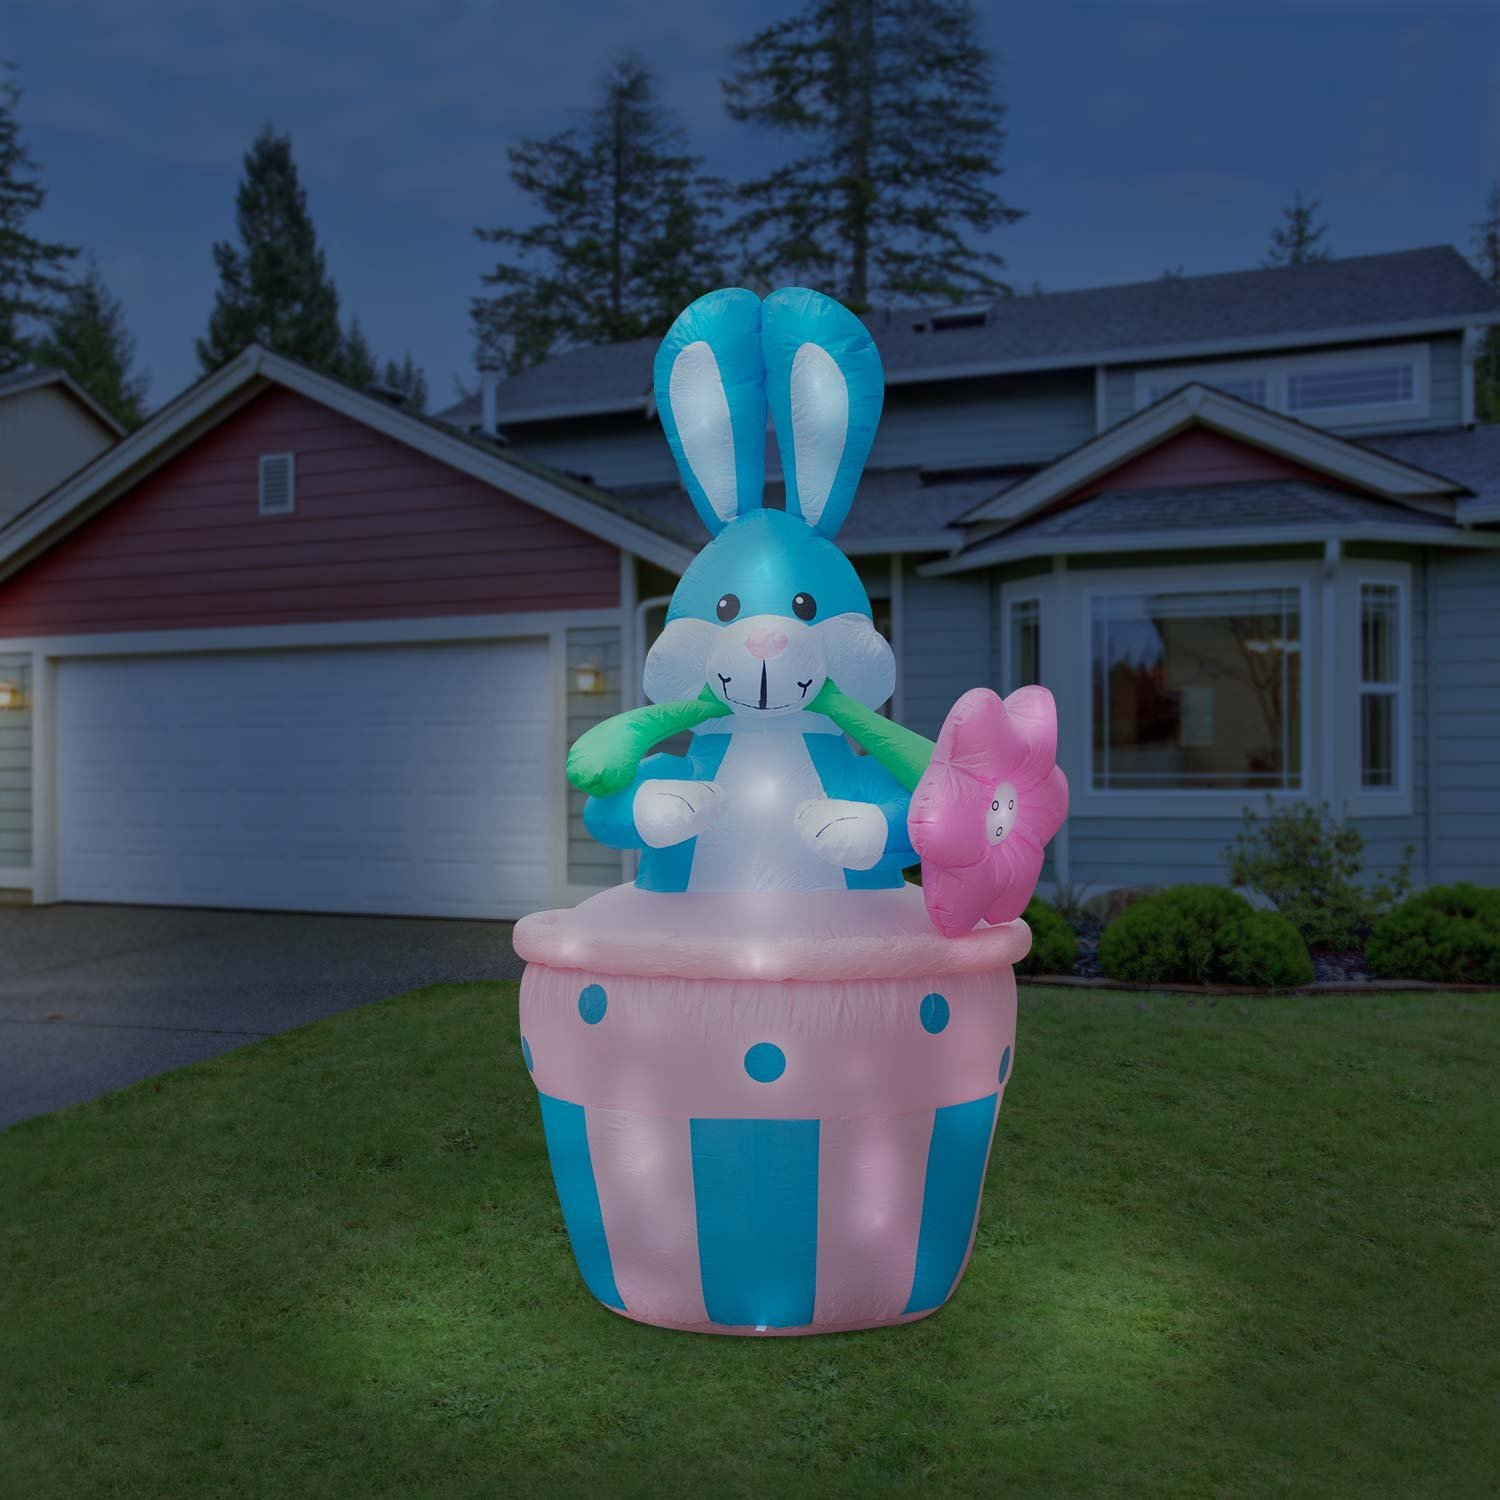 Buy Holidayana Inflatable 8ft Giant Easter Bunny In Basket